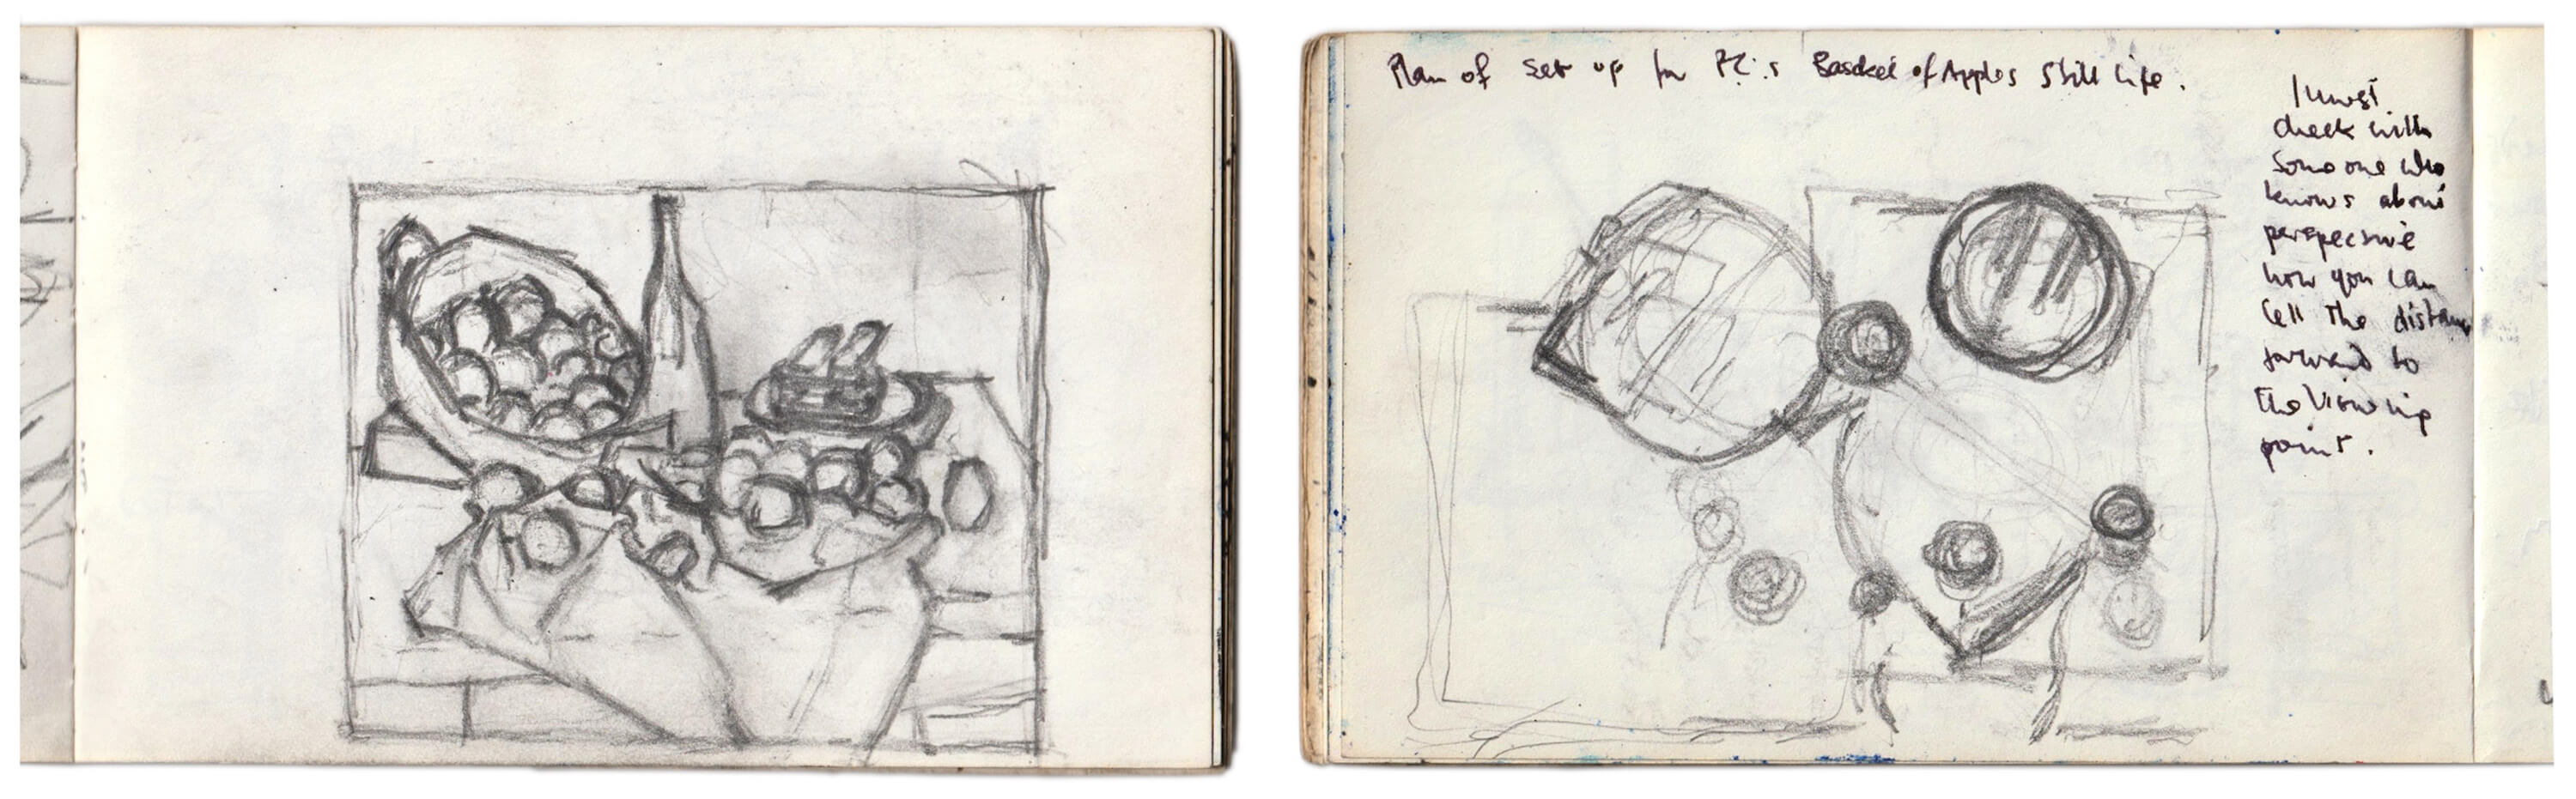 Sargy Mann, Sketchbook, Cézanne Studies (Sargy Mann estate)